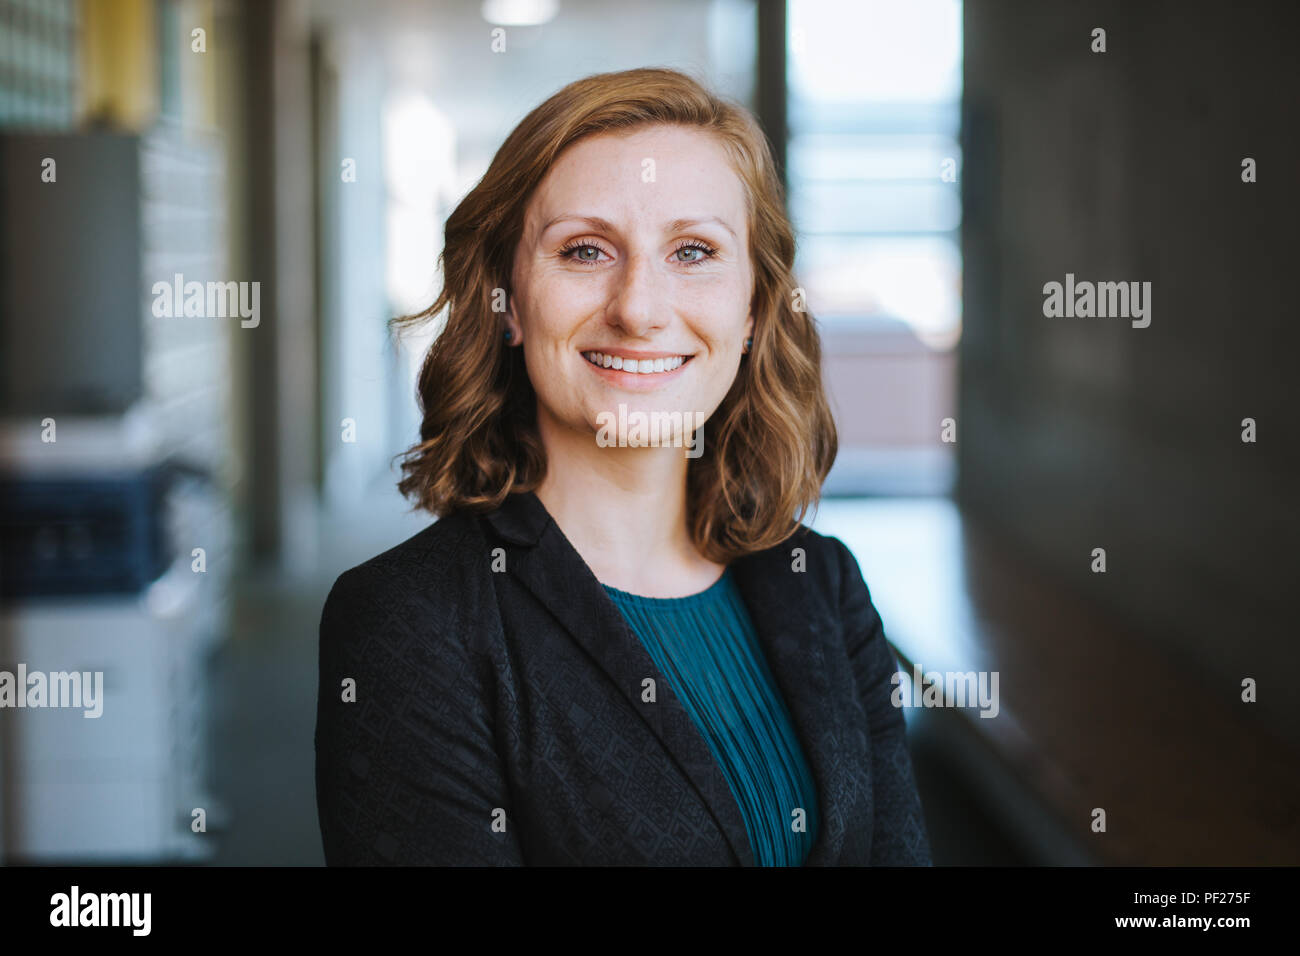 elegant and confident business woman smiles at the camera - Stock Image